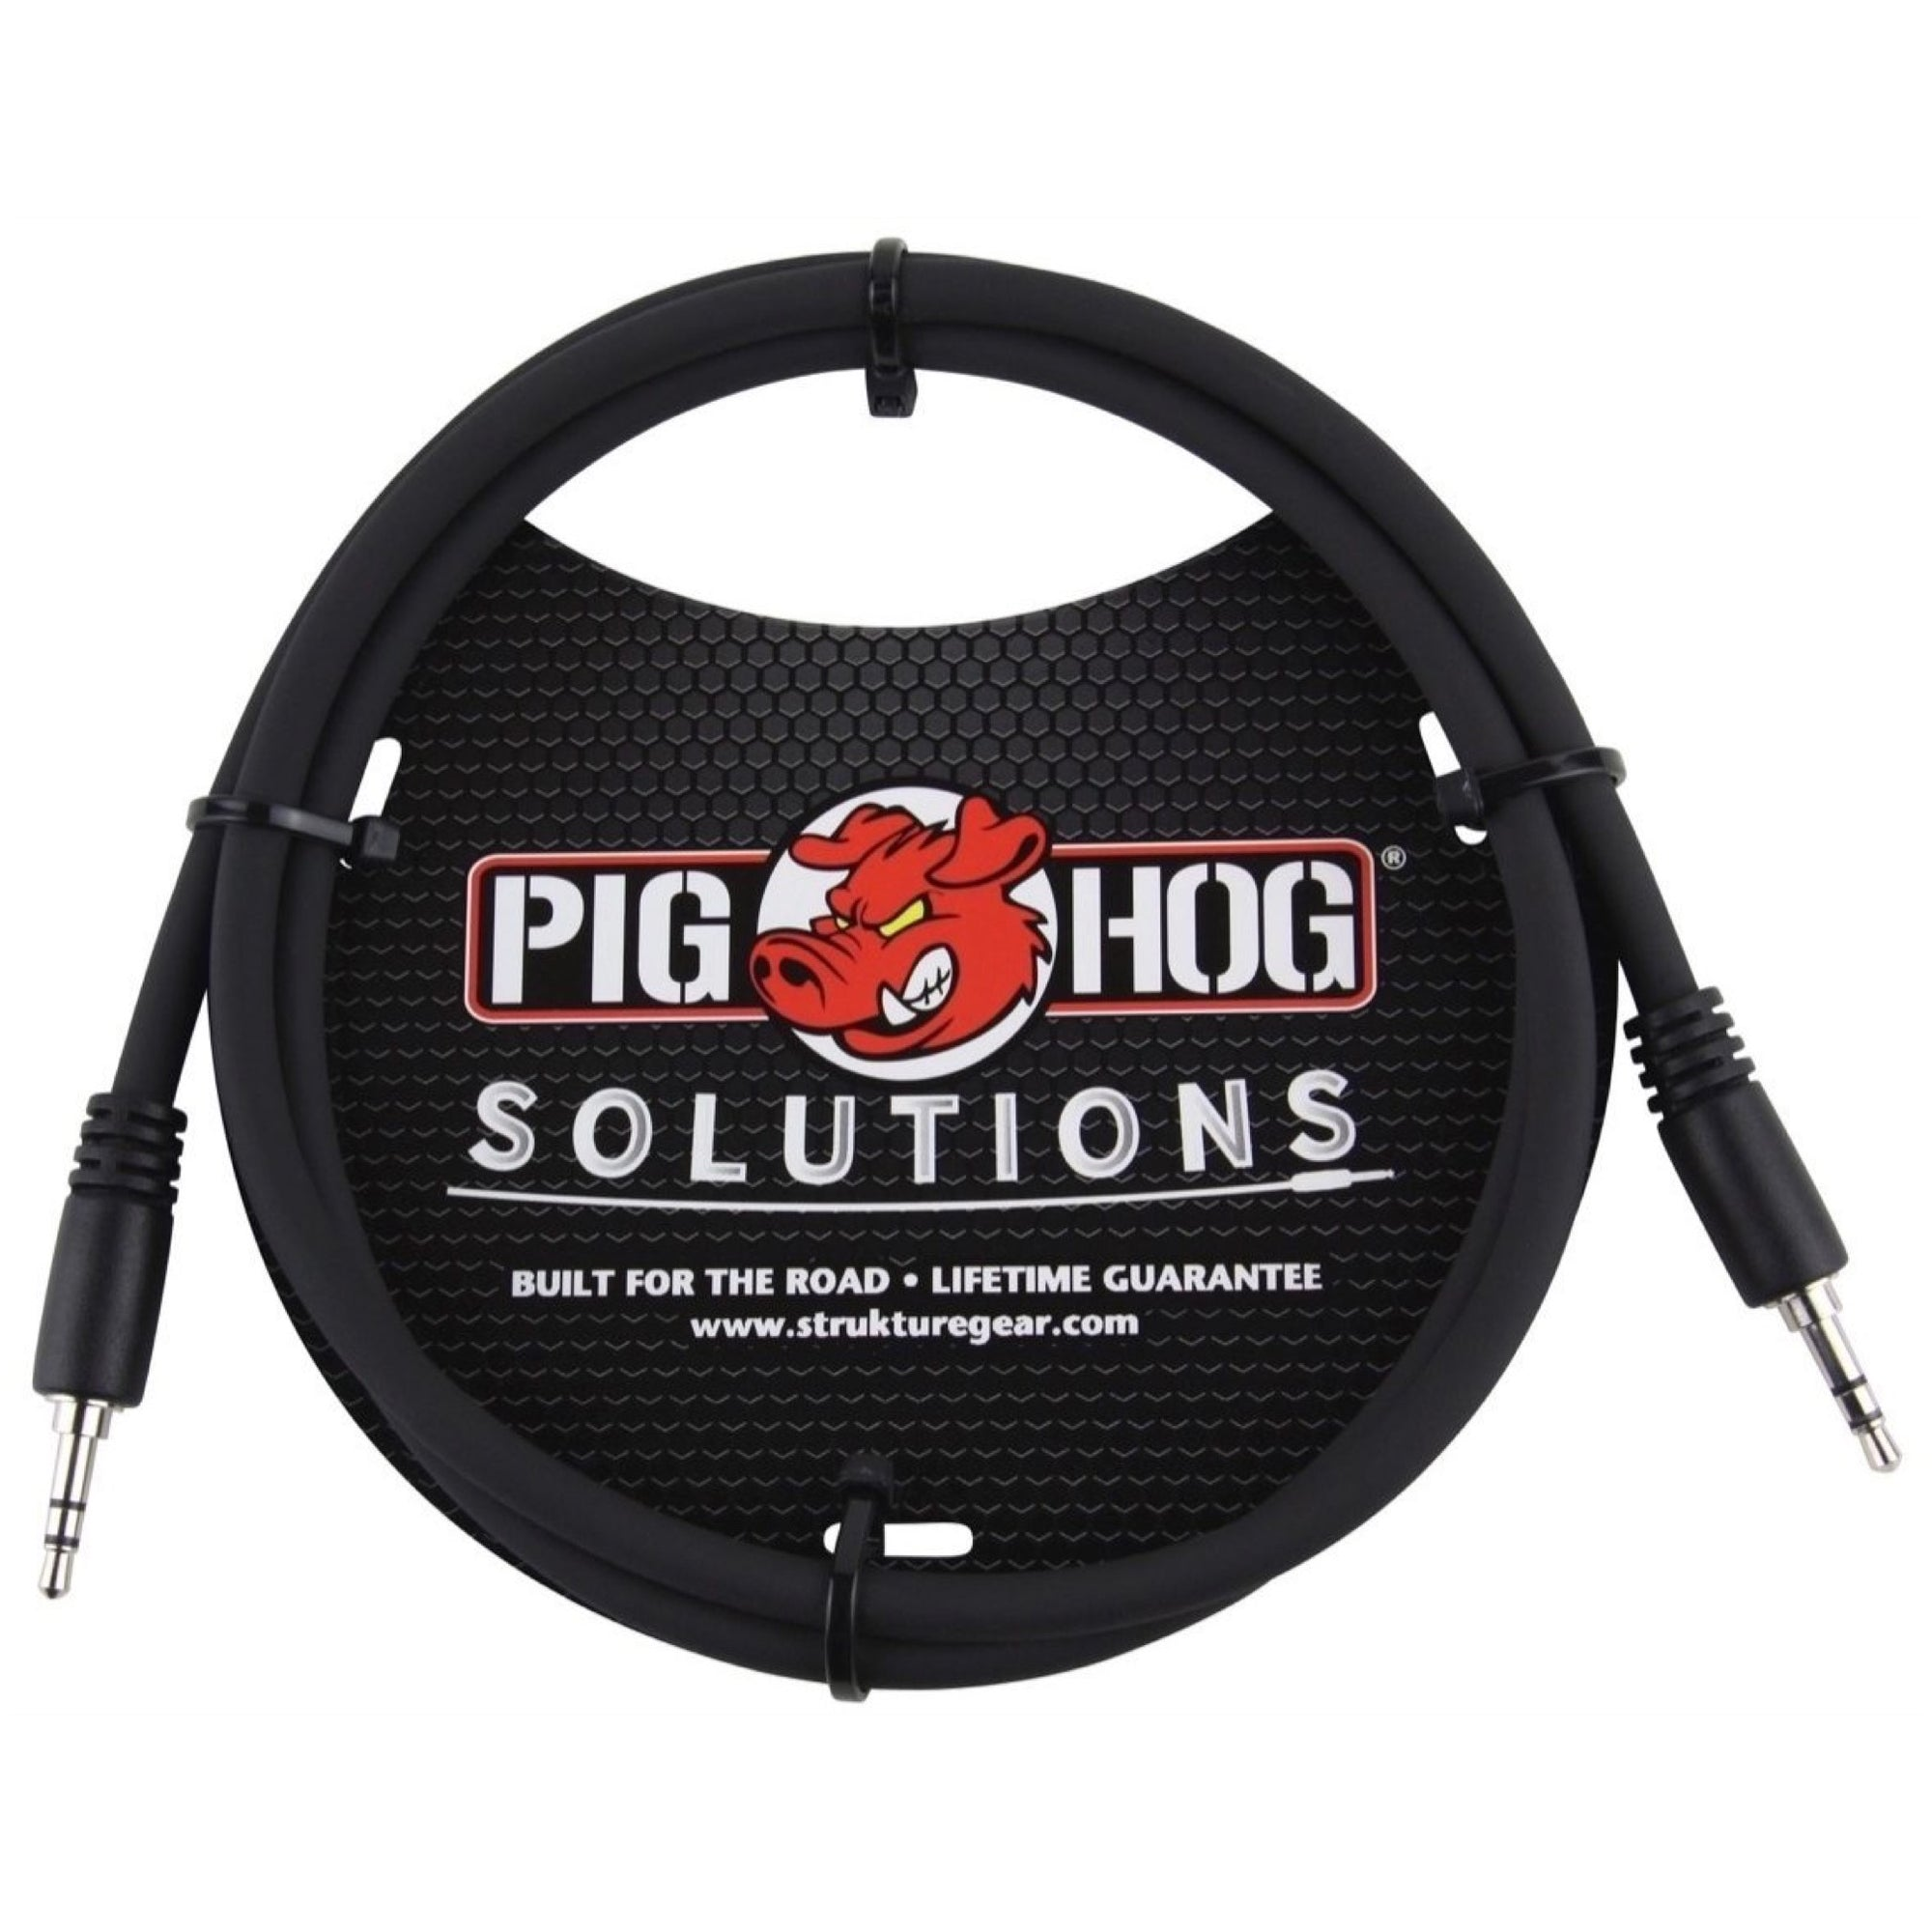 Pig Hog 3.5mm TRS (Male) to 3.5mm TRS (Male) Cable, 9'